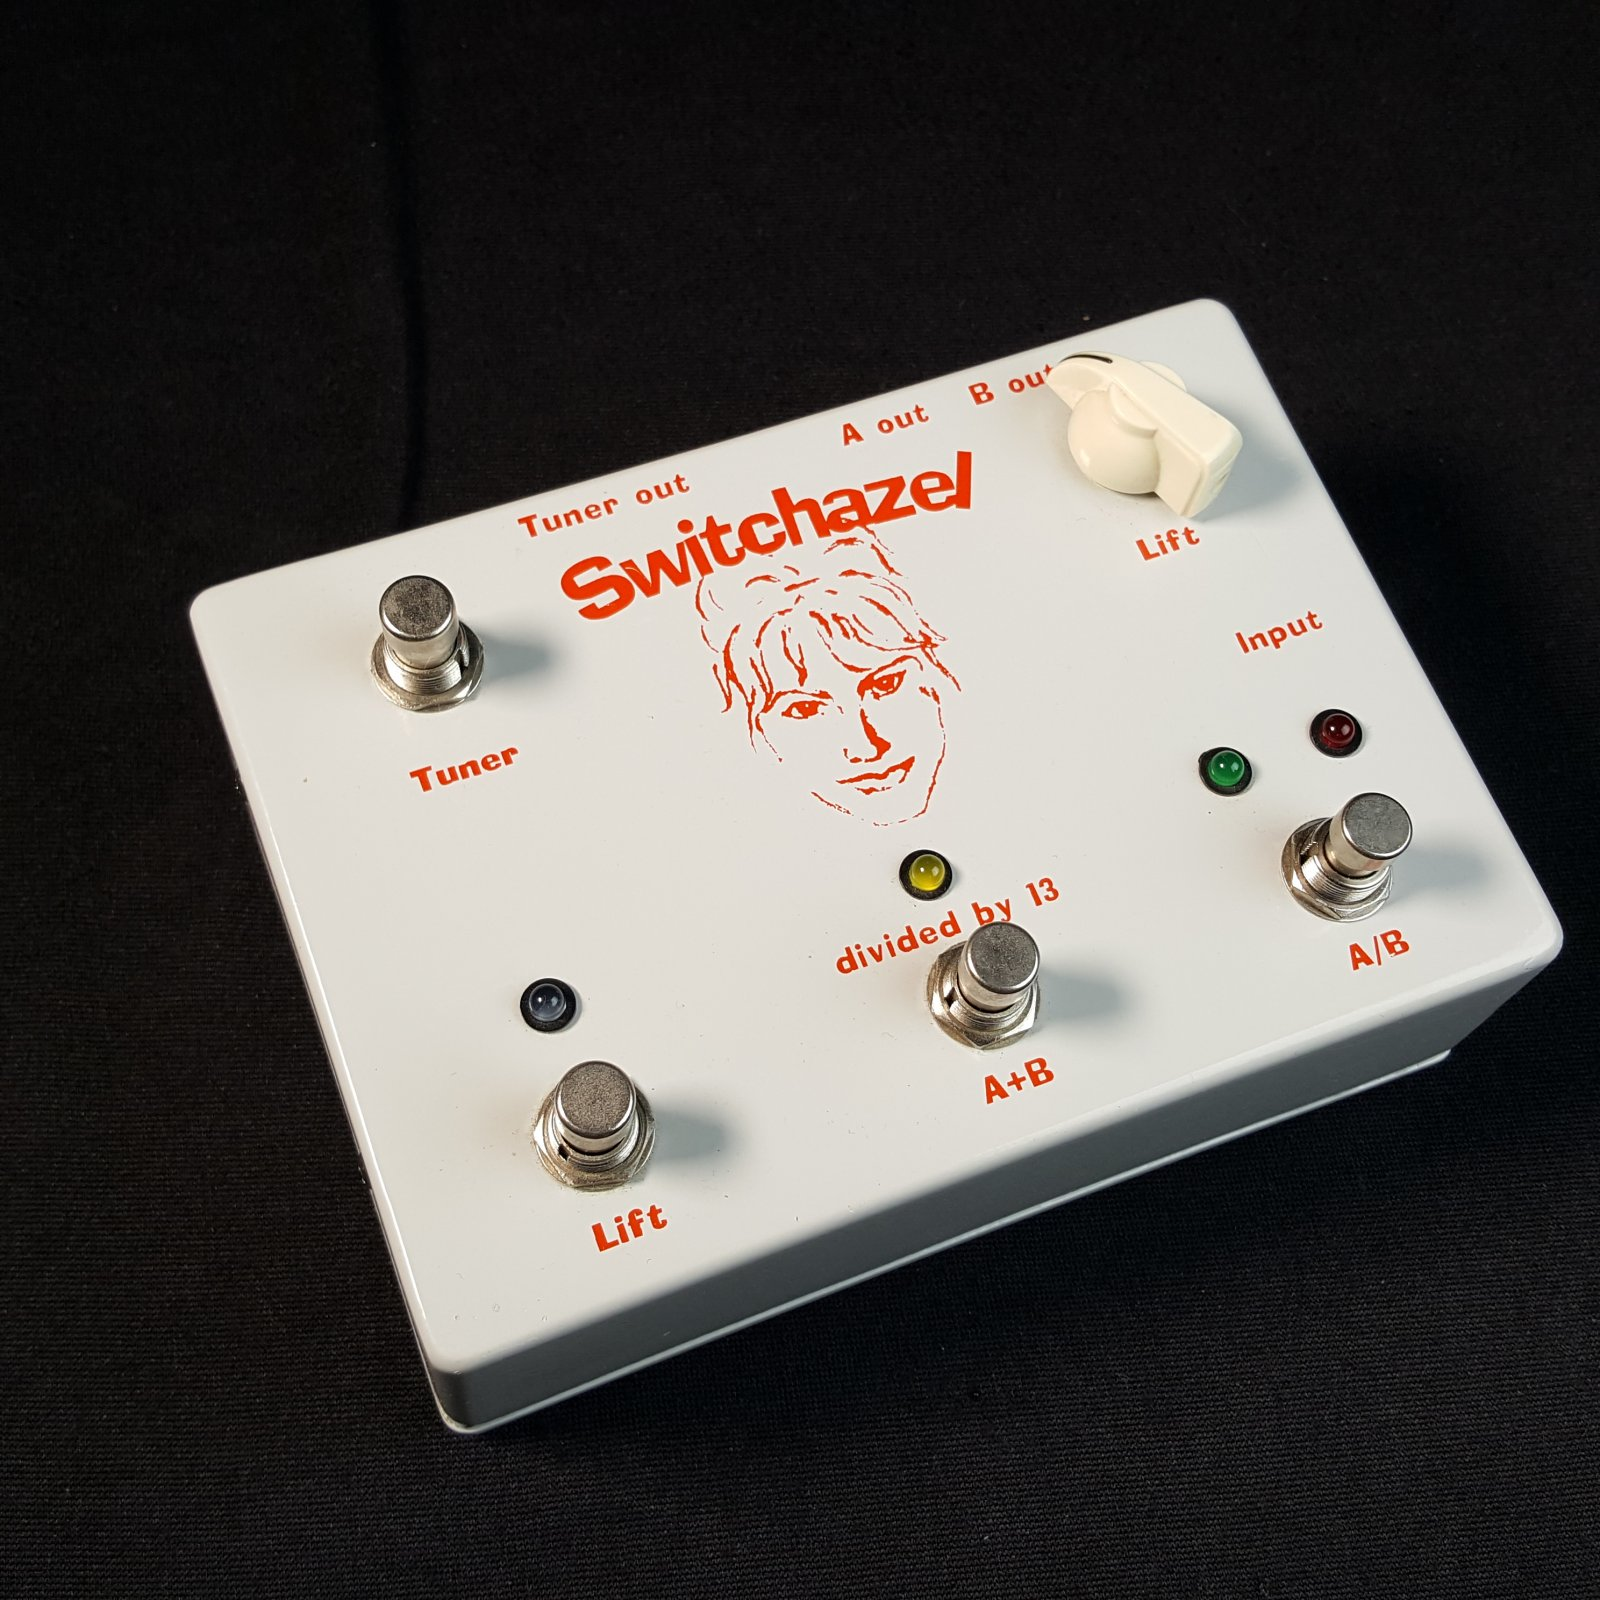 Used Divided By 13 Switchazel A/B A+B Box